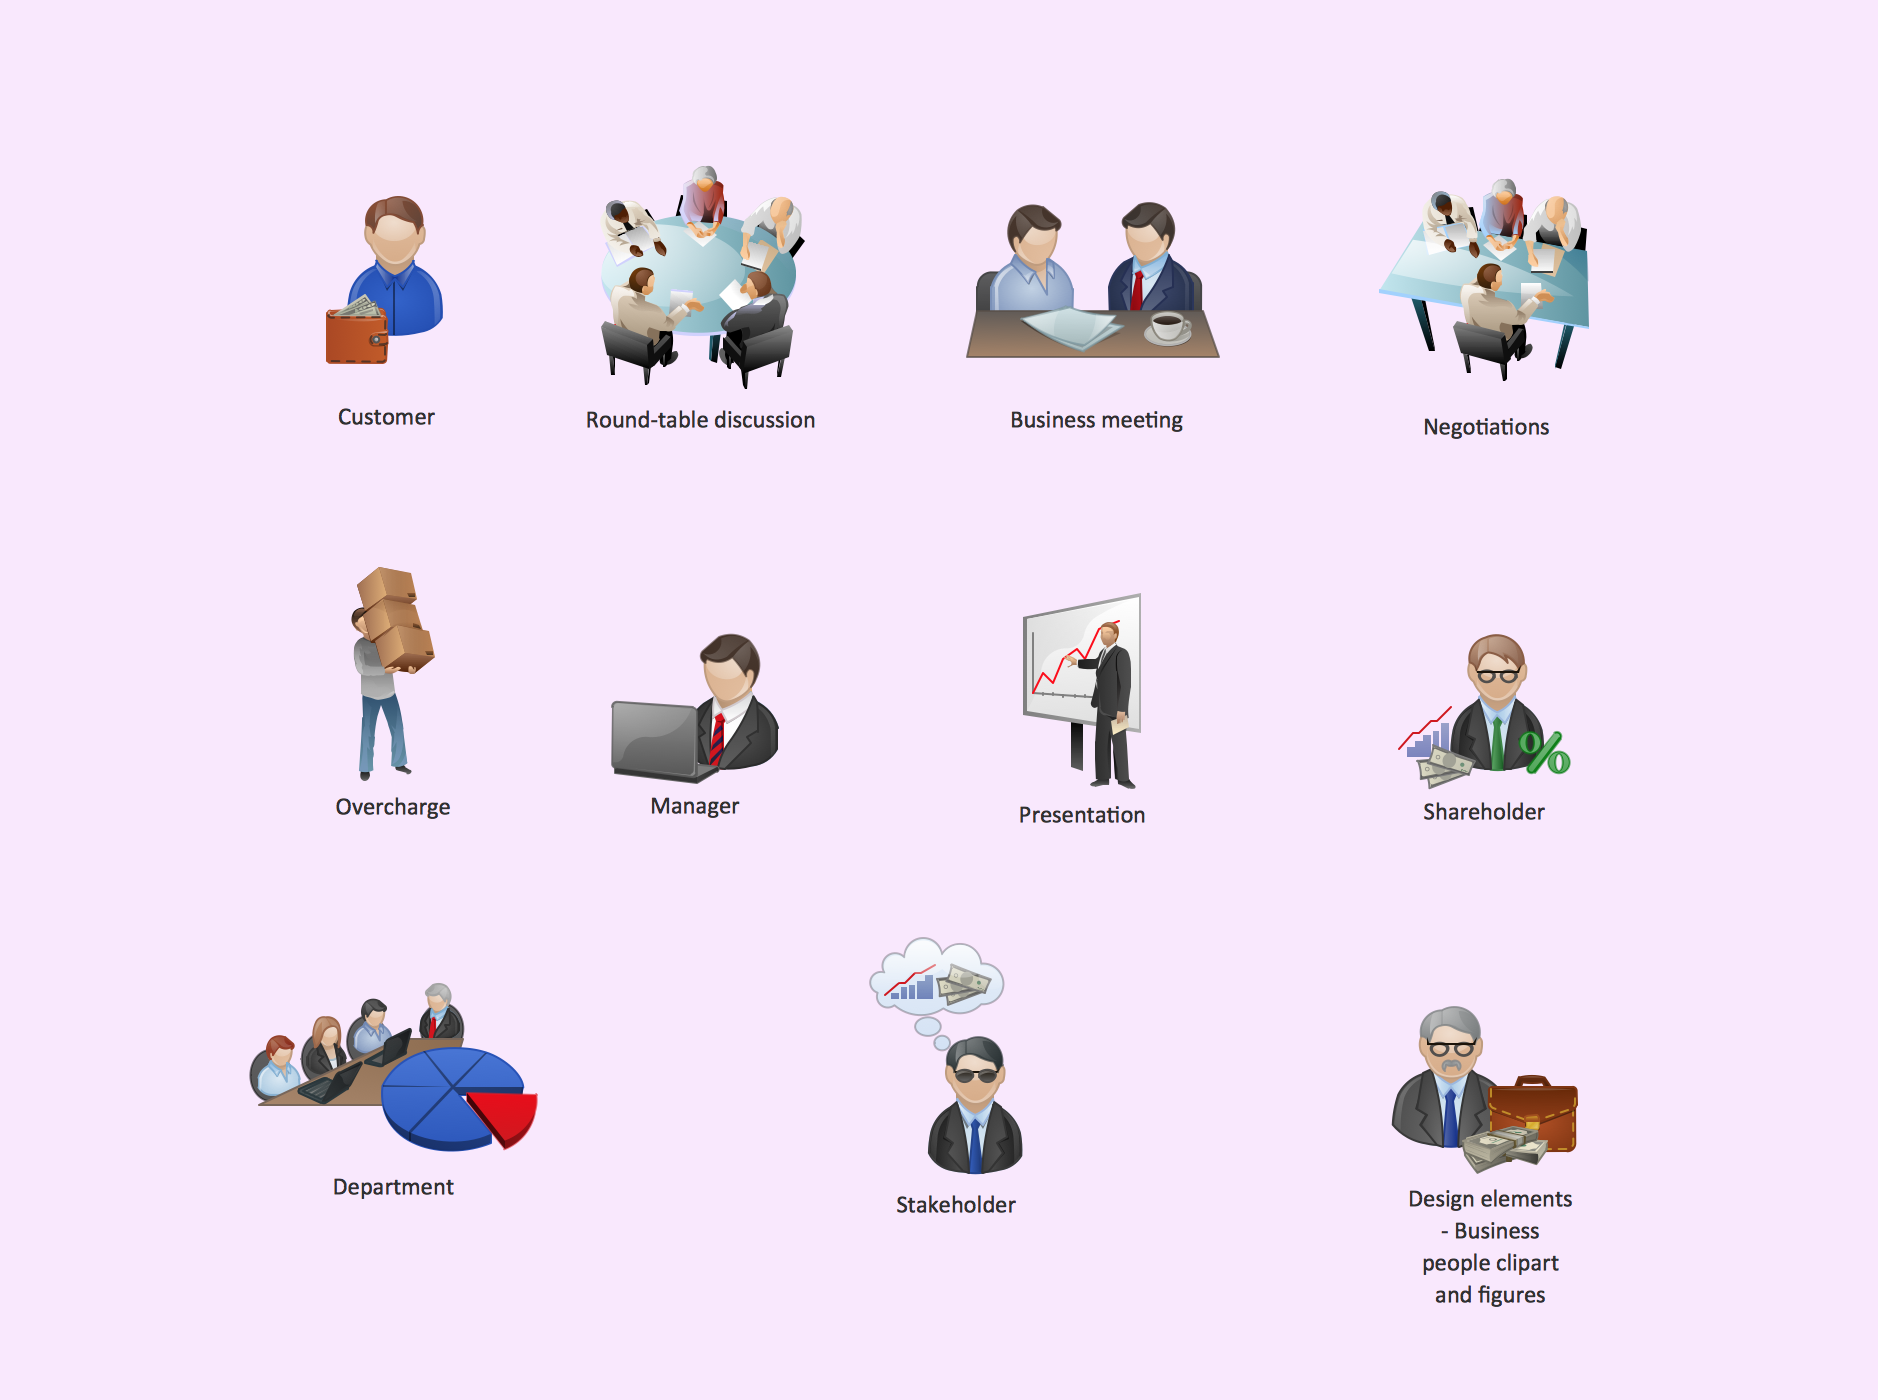 People vs projects clipart clip art library stock People vs projects clipart - ClipartFest clip art library stock